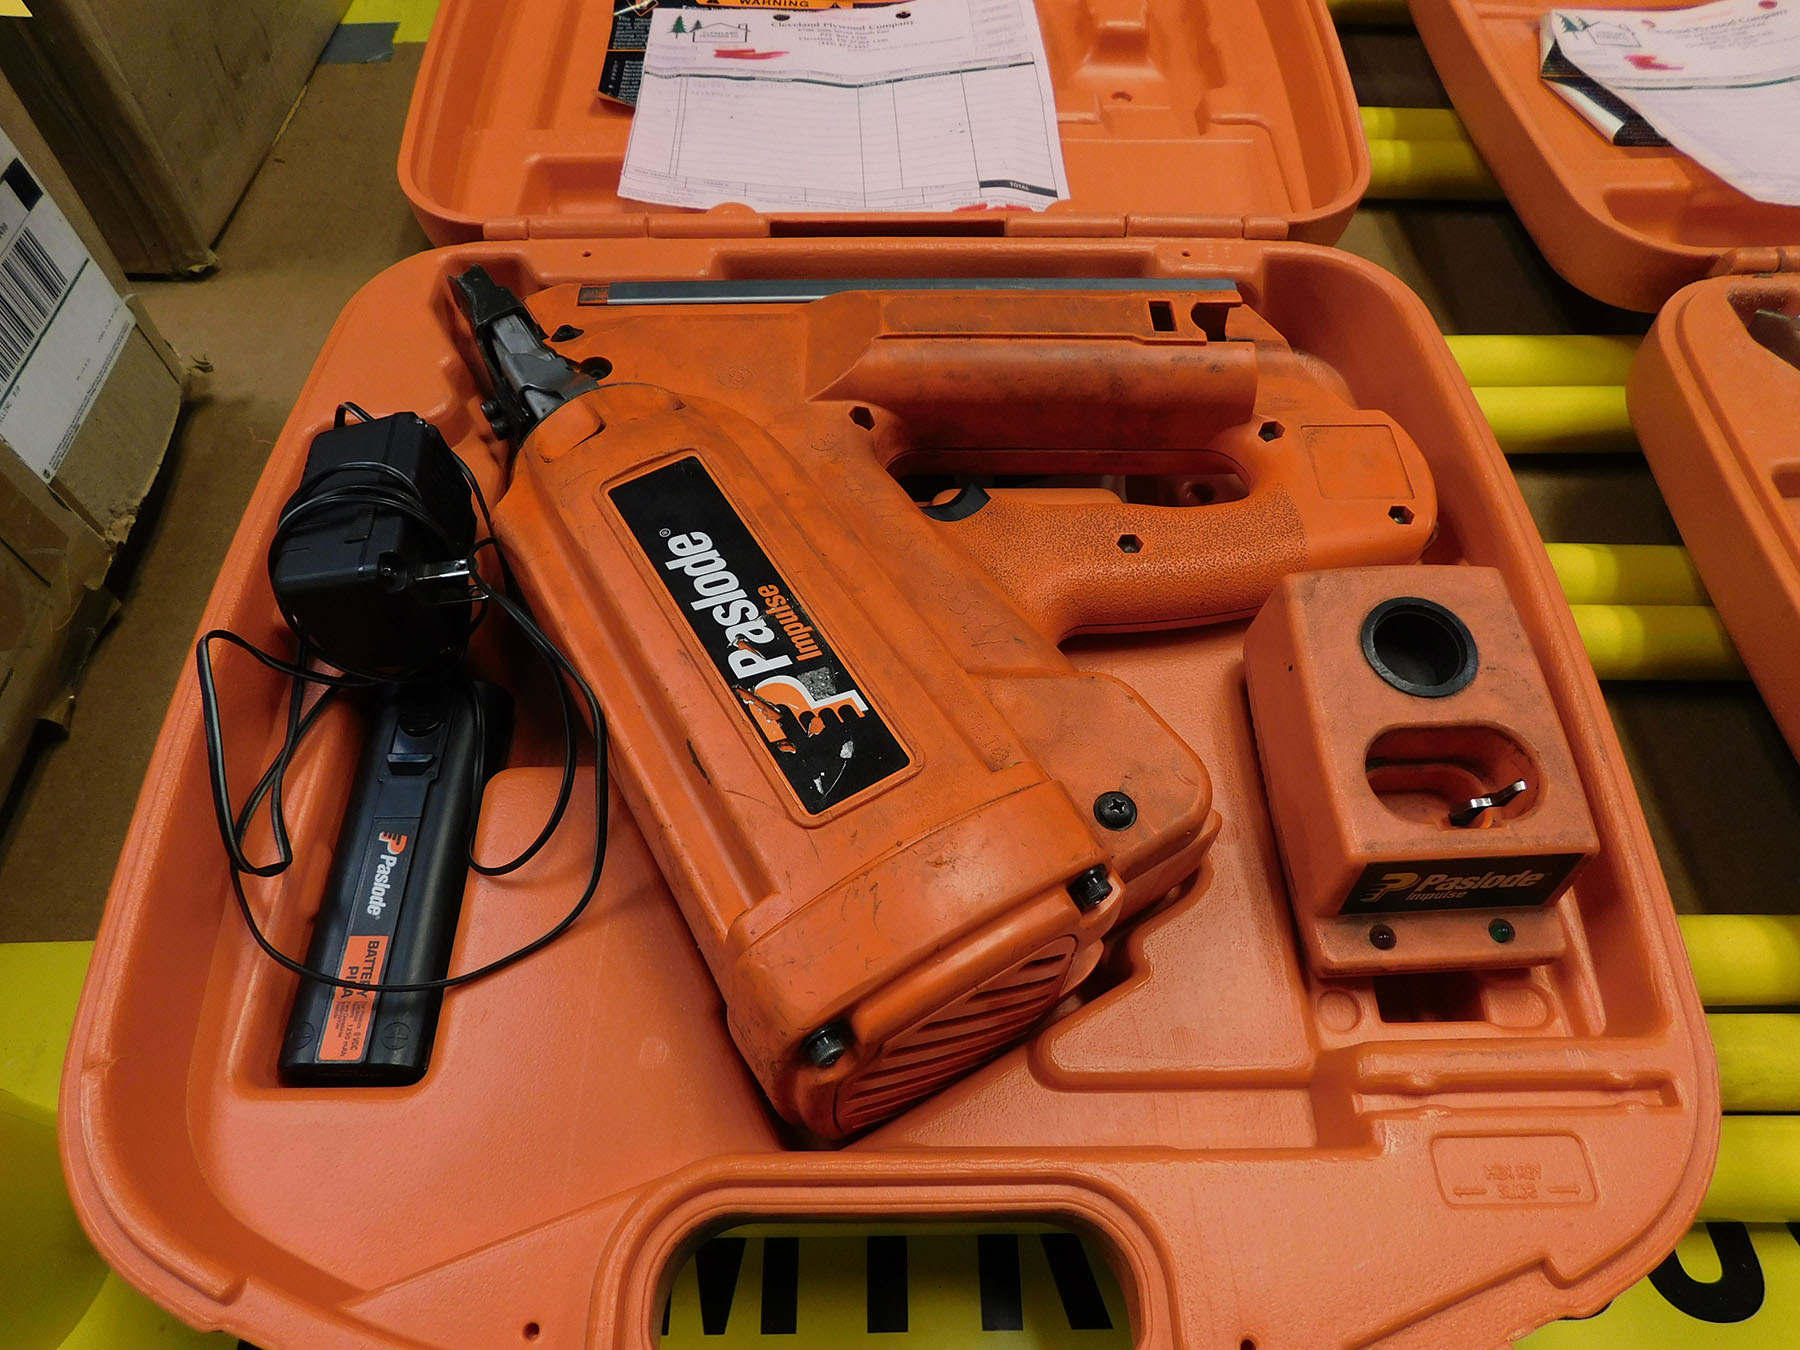 Lot 55B - PASLODE IMPULSE CORDLESS FRAMING NAIL GUN